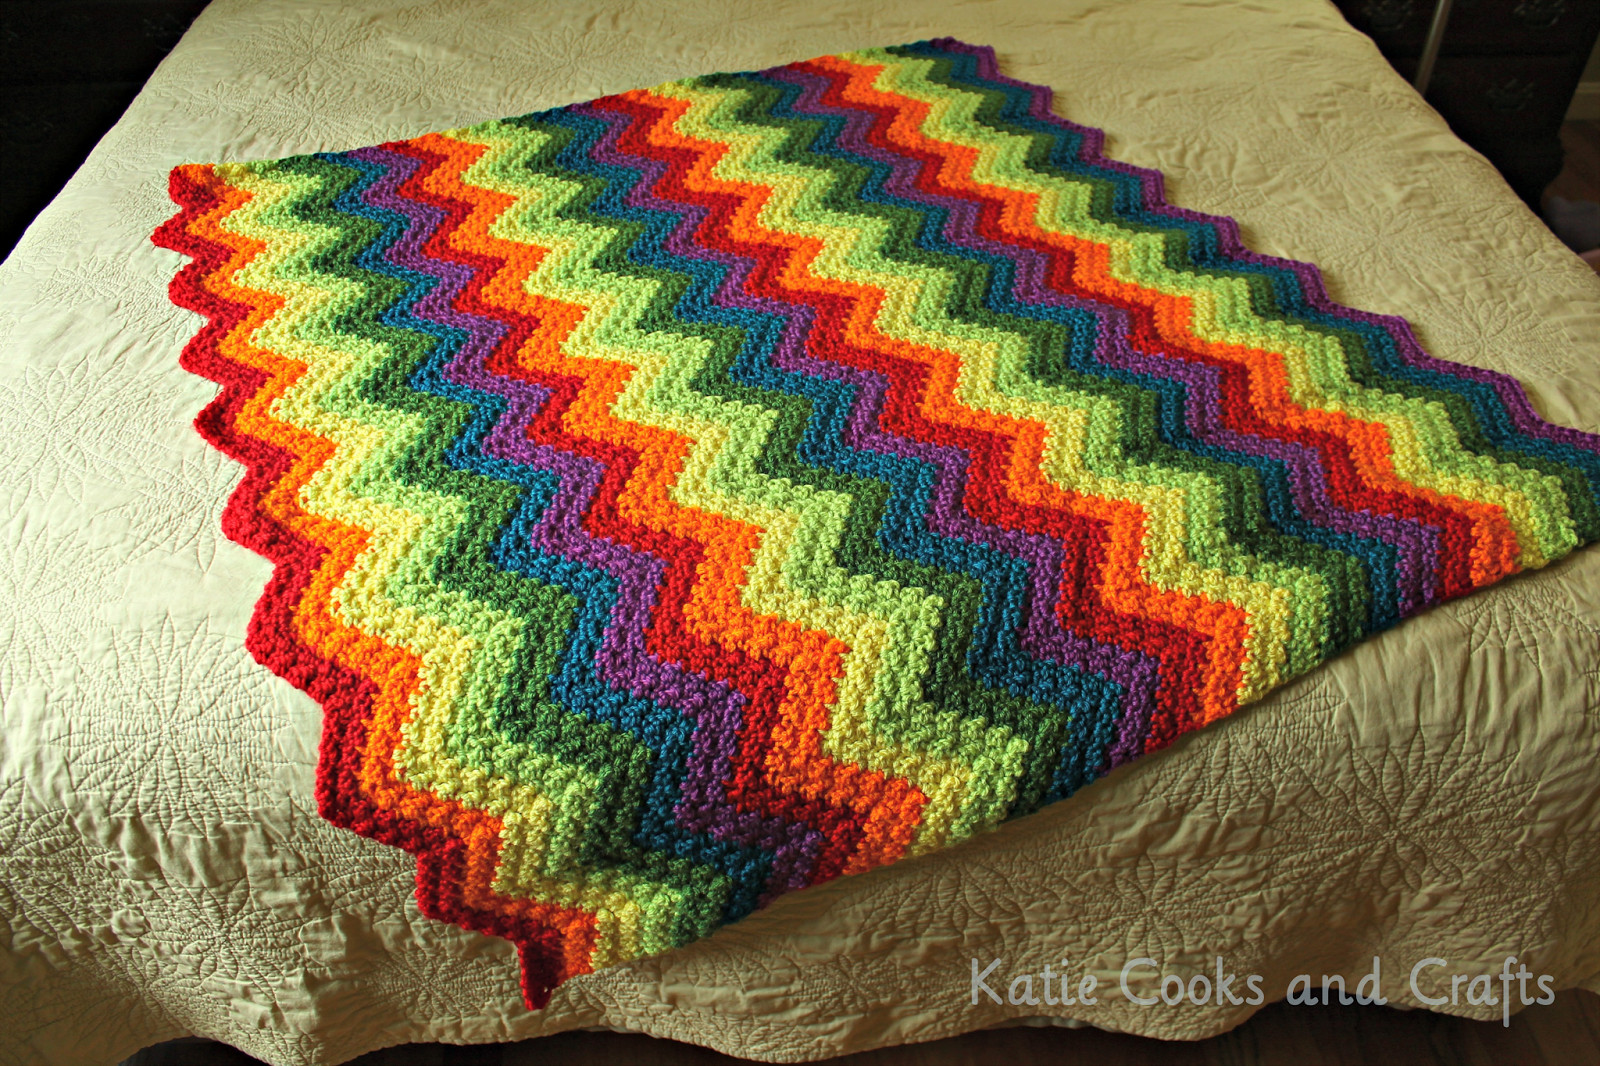 Rainbow Baby Blanket Elegant Katie Cooks and Crafts Rumpled Ripple Rainbow Crochet Of Charming 42 Ideas Rainbow Baby Blanket